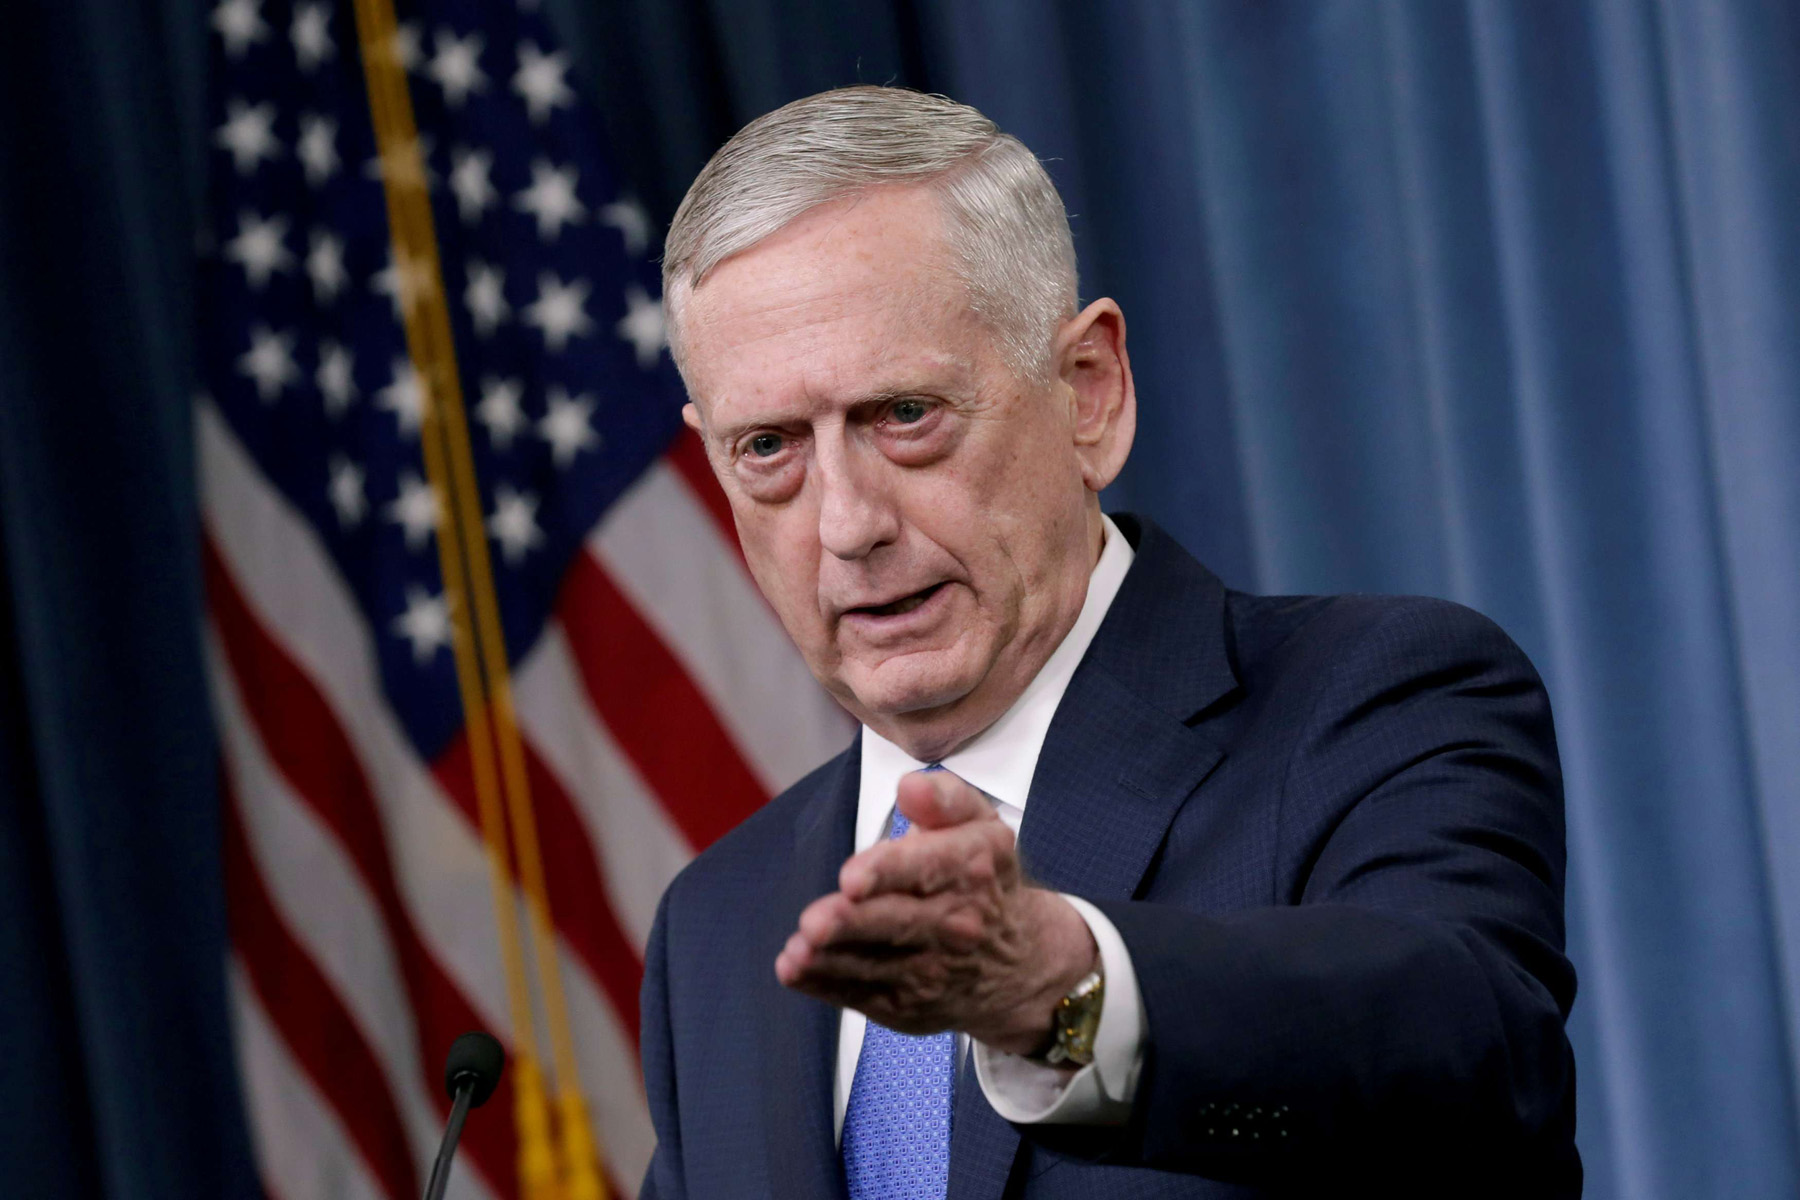 US Defense Secretary James Mattis at a news briefing at the Pentagon in Washington. (Reuters)